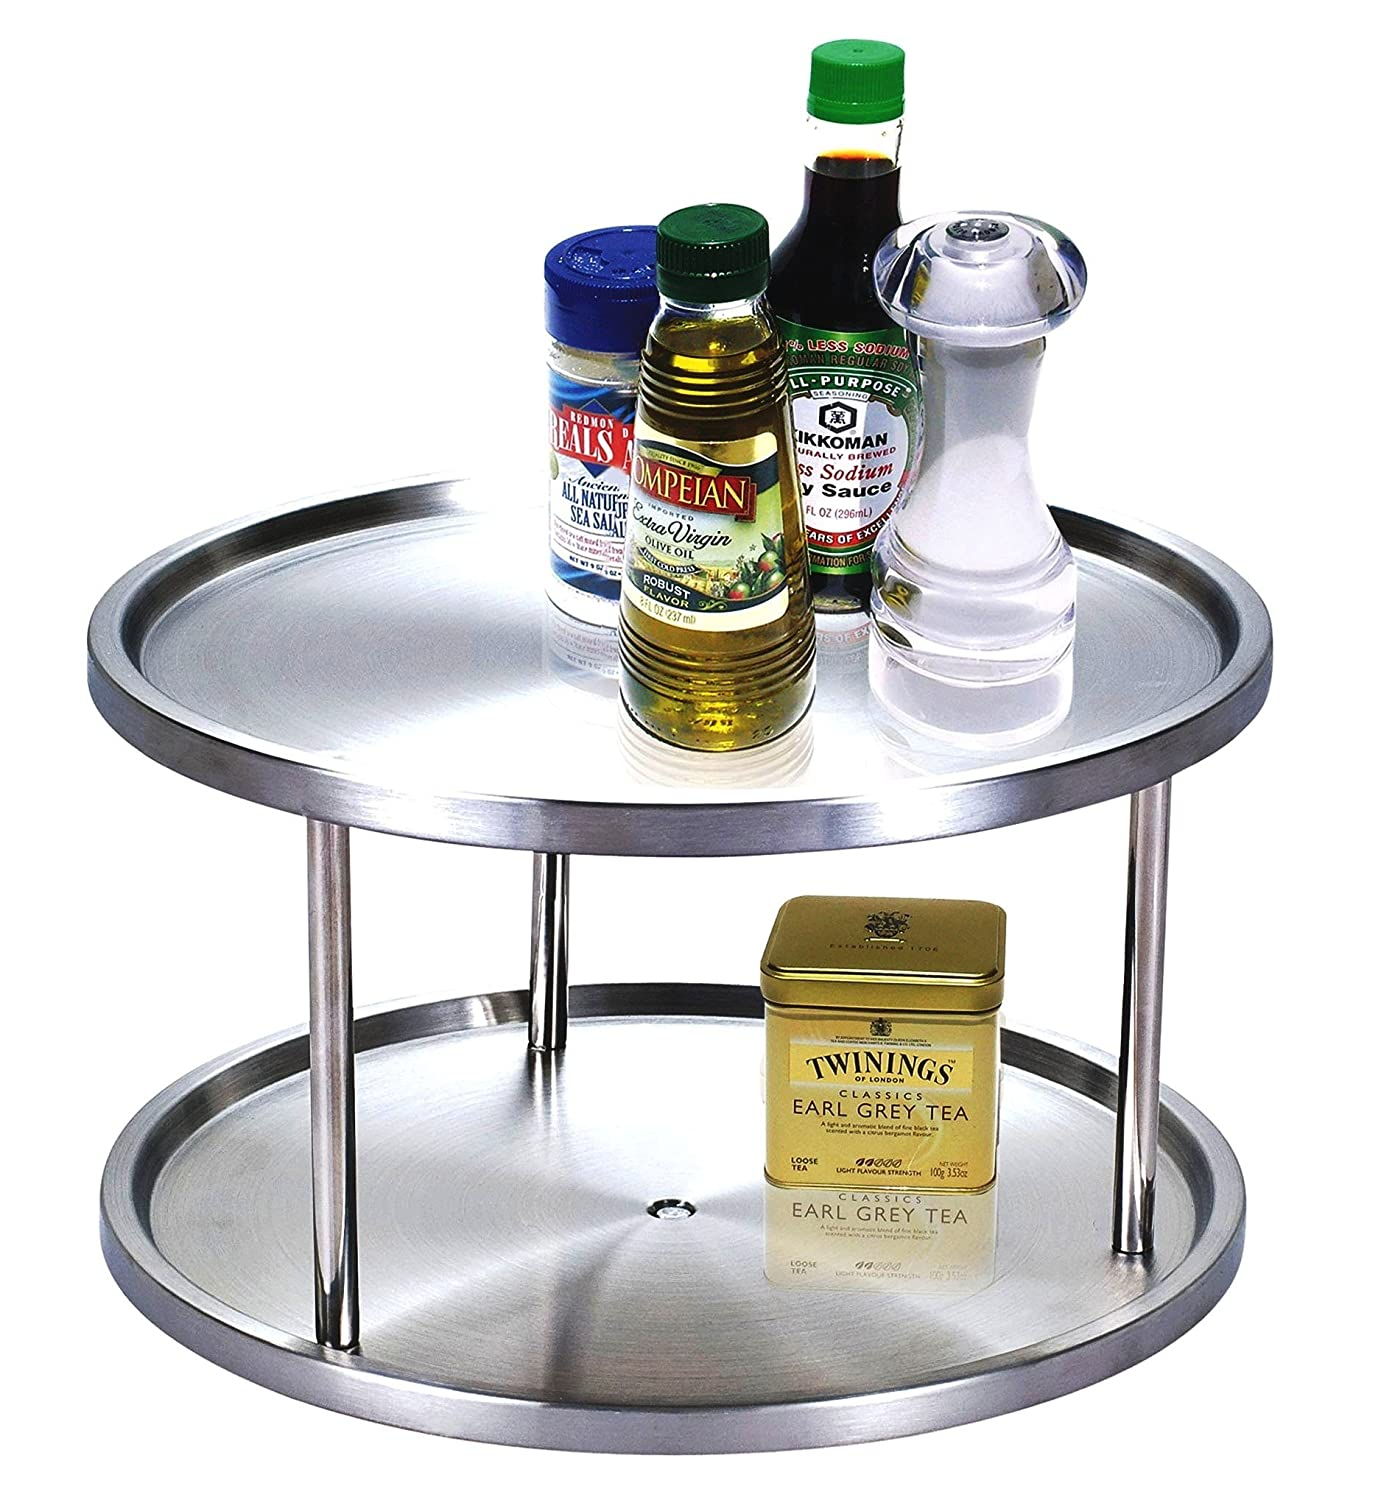 Cook N Home 10.5-Inch 2 Tier Lazy Susan Turntable Organizer, Stainless Steel NC-00213